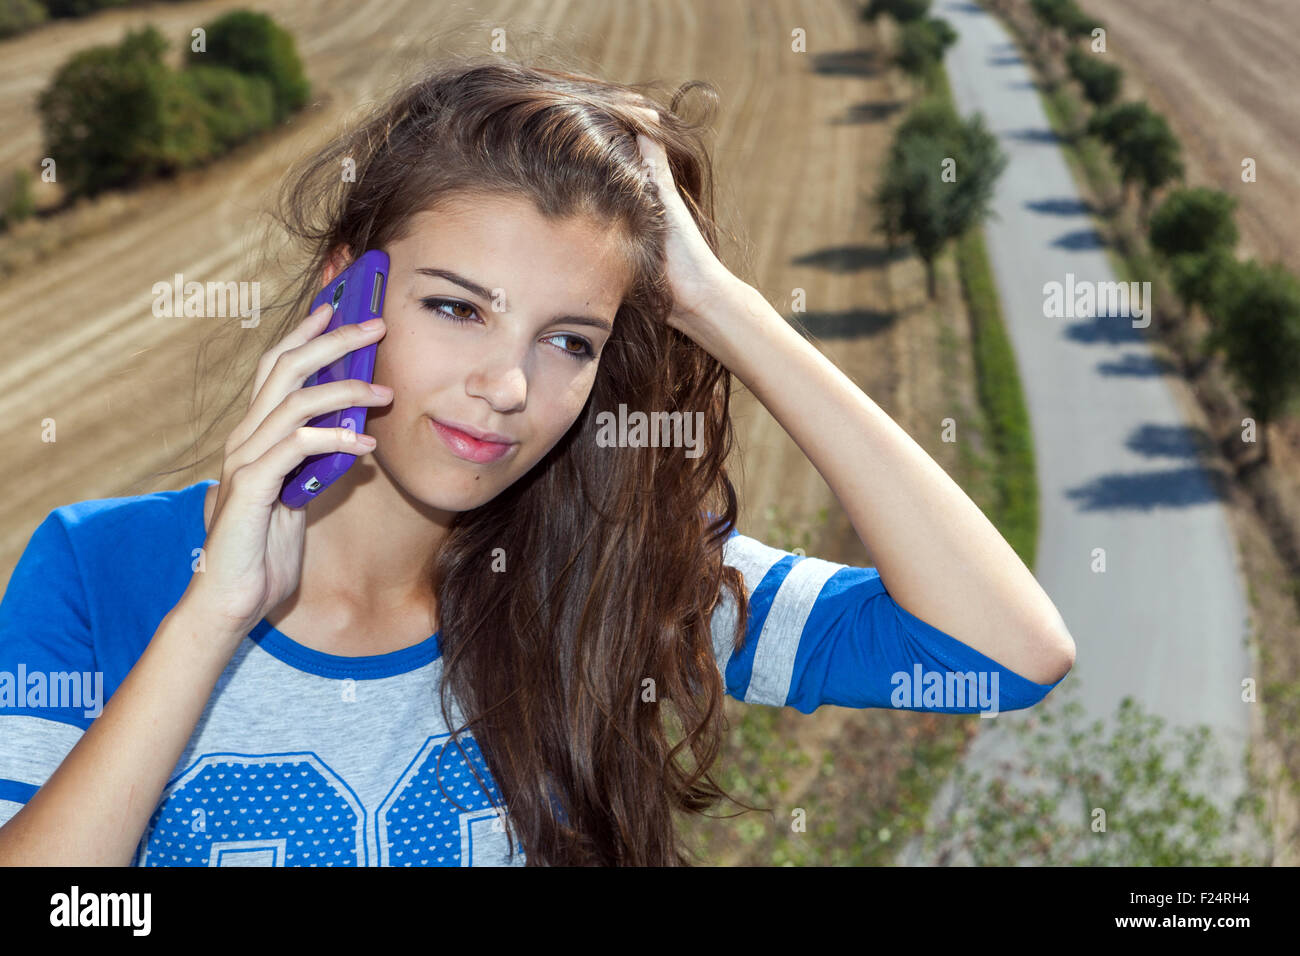 Teenager girl talking on mobile phone - Stock Image